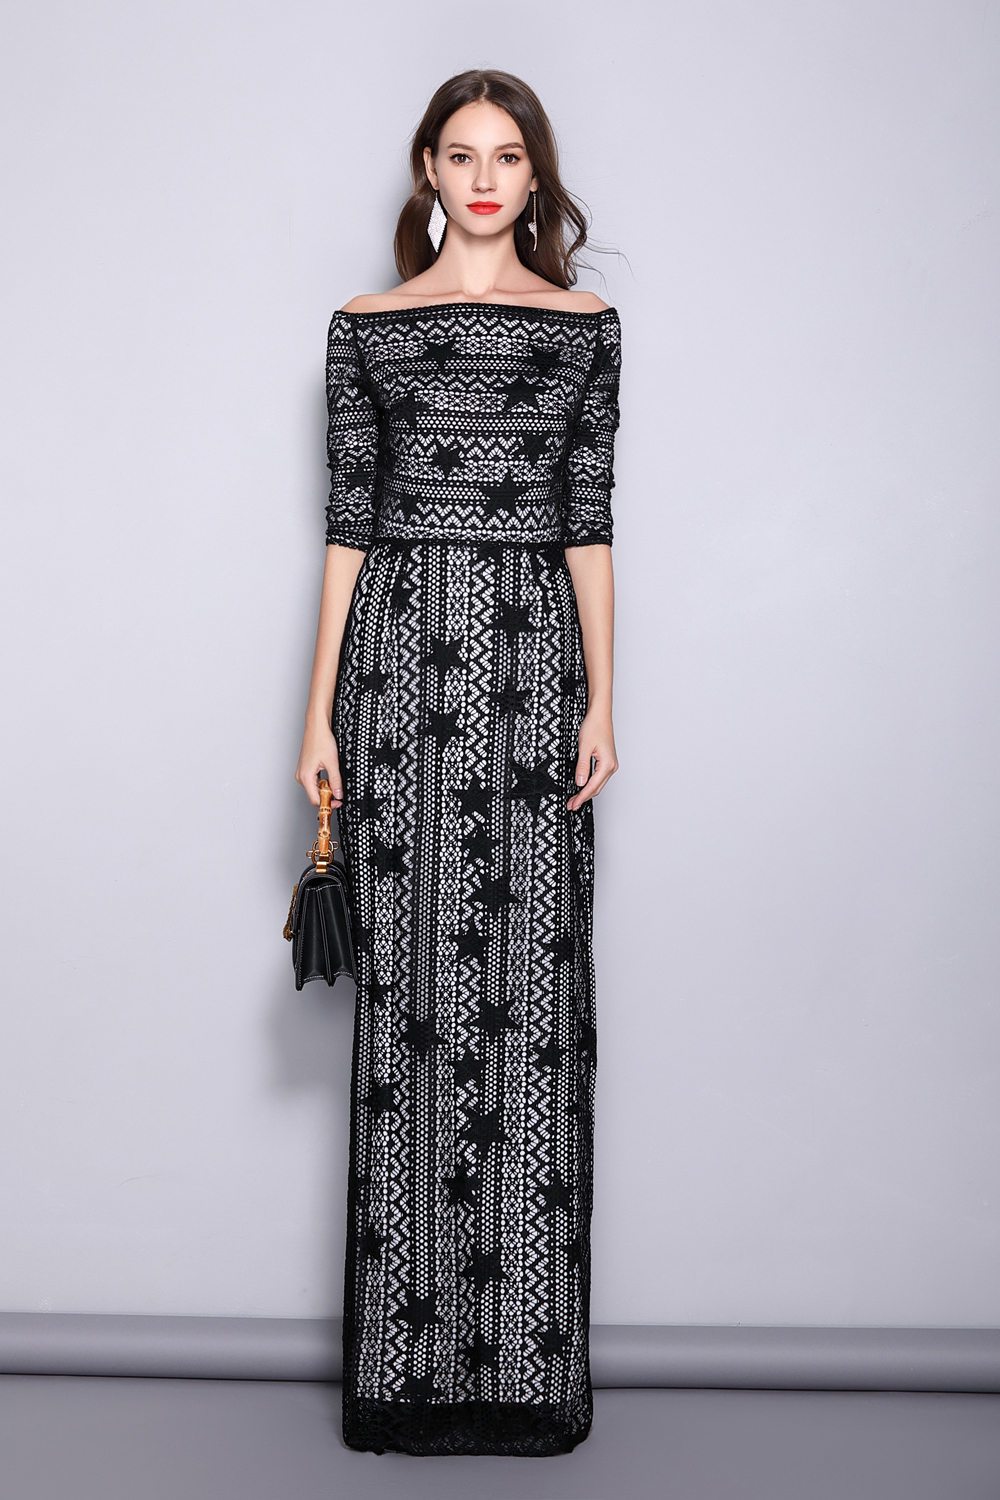 Women 39 s Slash Neckline 3 4 Sleeves Off the Shoulder Embroidery Lace Split Elegant Party Dresses Fashion Long Runway Dresses in Dresses from Women 39 s Clothing